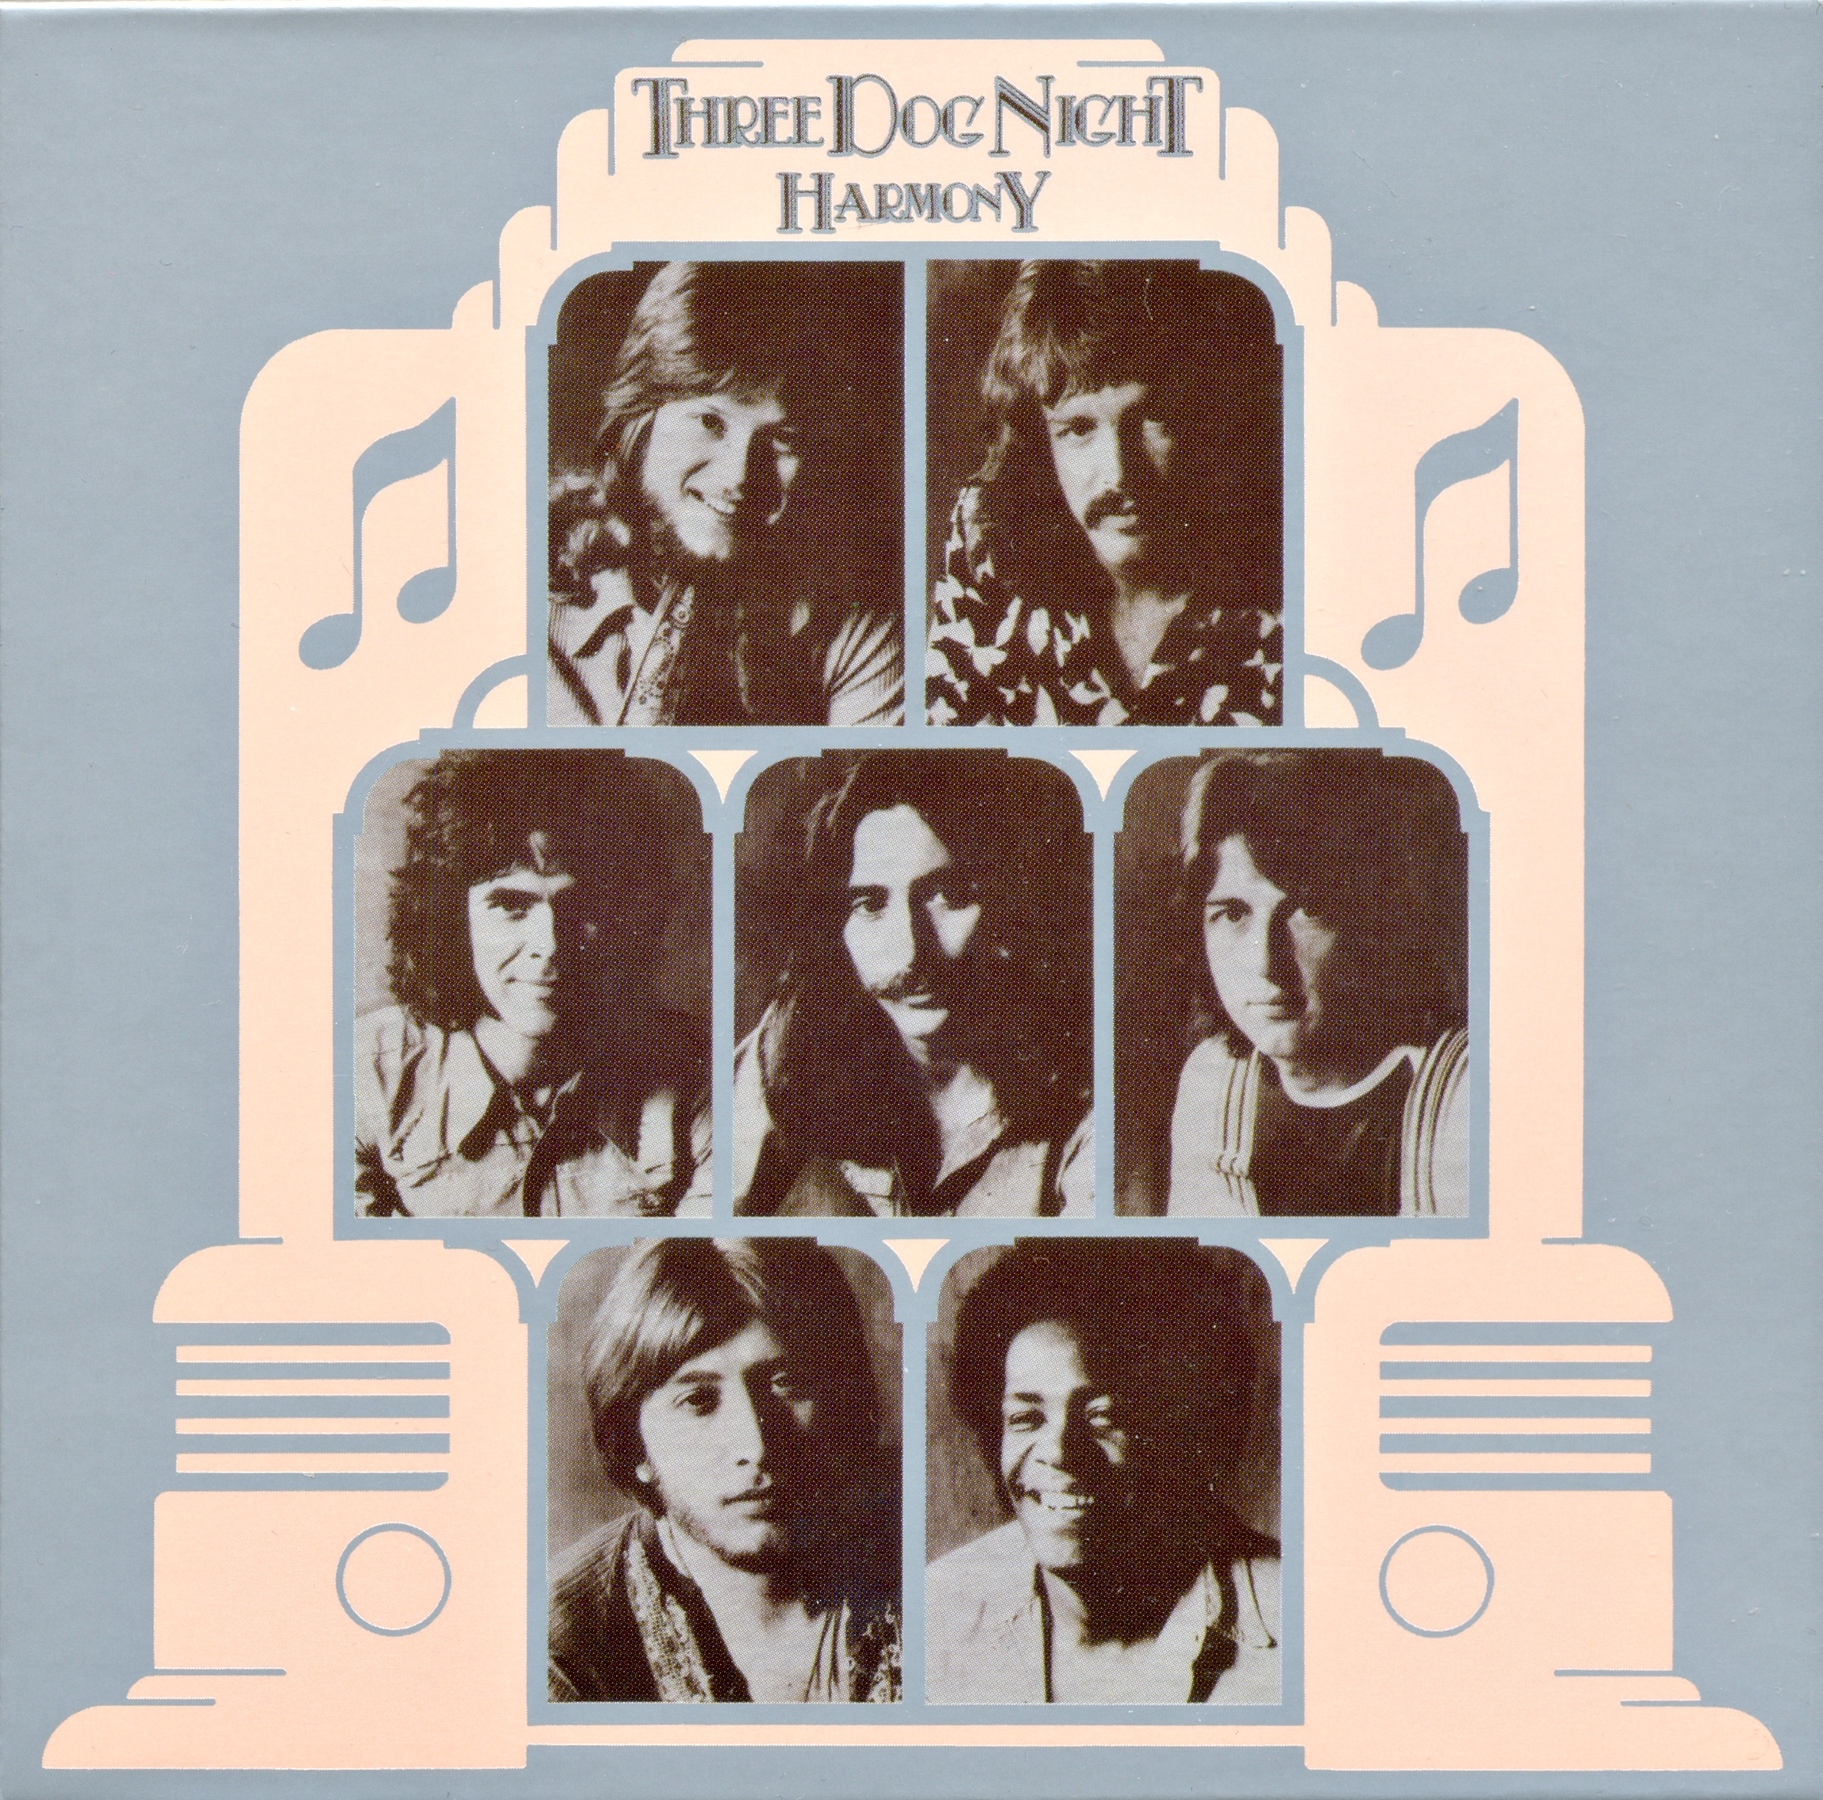 Three Dog Night - An Old Fashioned Love..